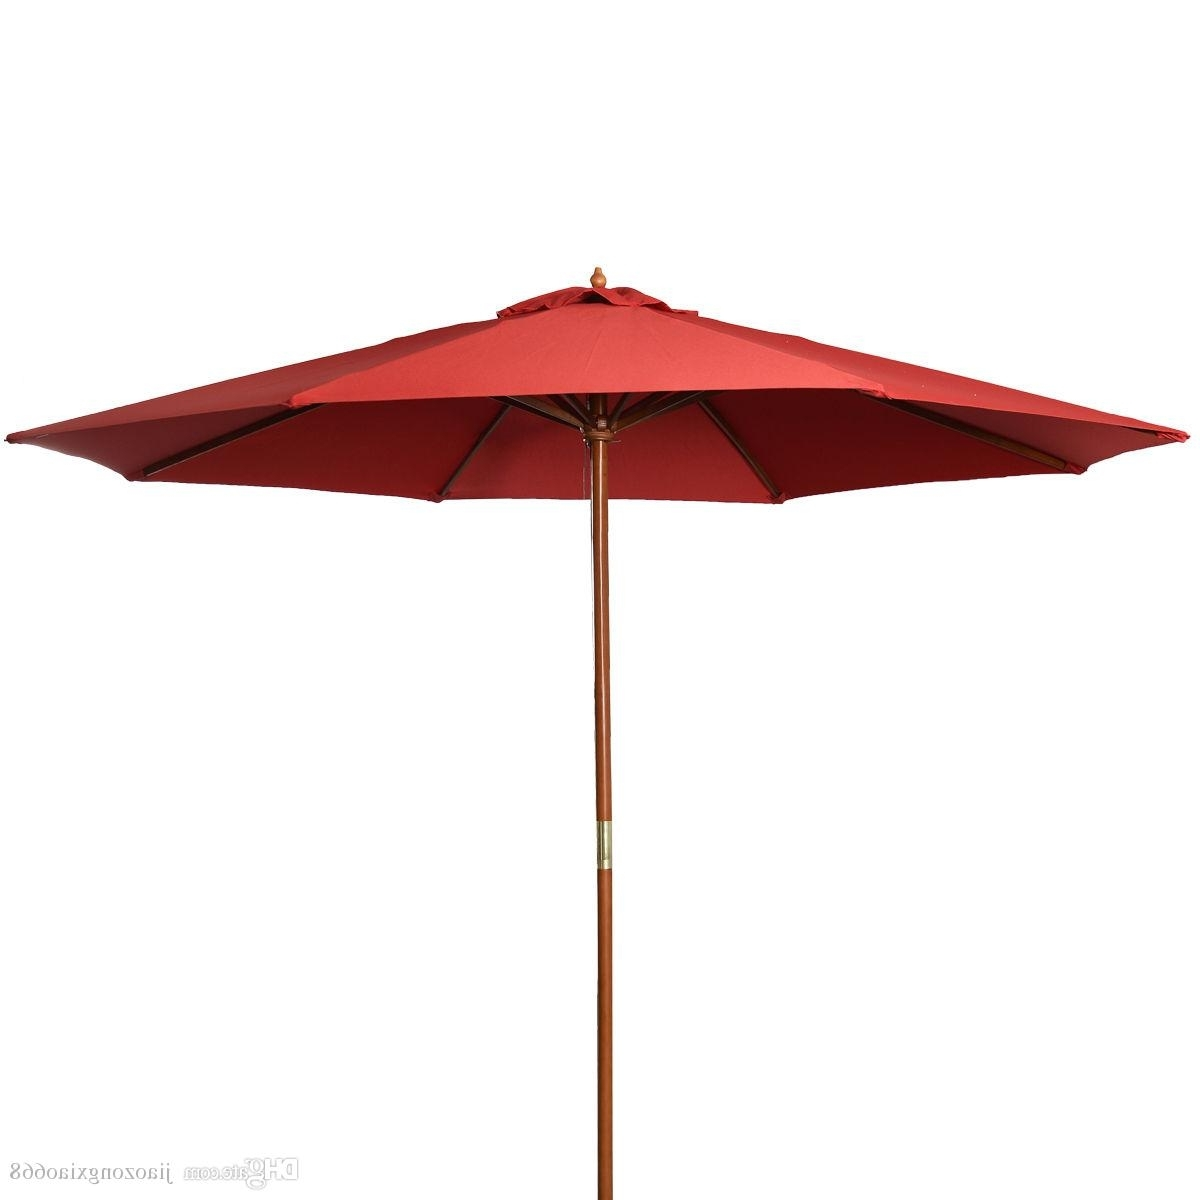 Preferred Red Patio Umbrellas Pertaining To 2018 9Ft Wooden Patio Umbrella Sun Shade Wood Pole Outdoor Beach (View 9 of 20)